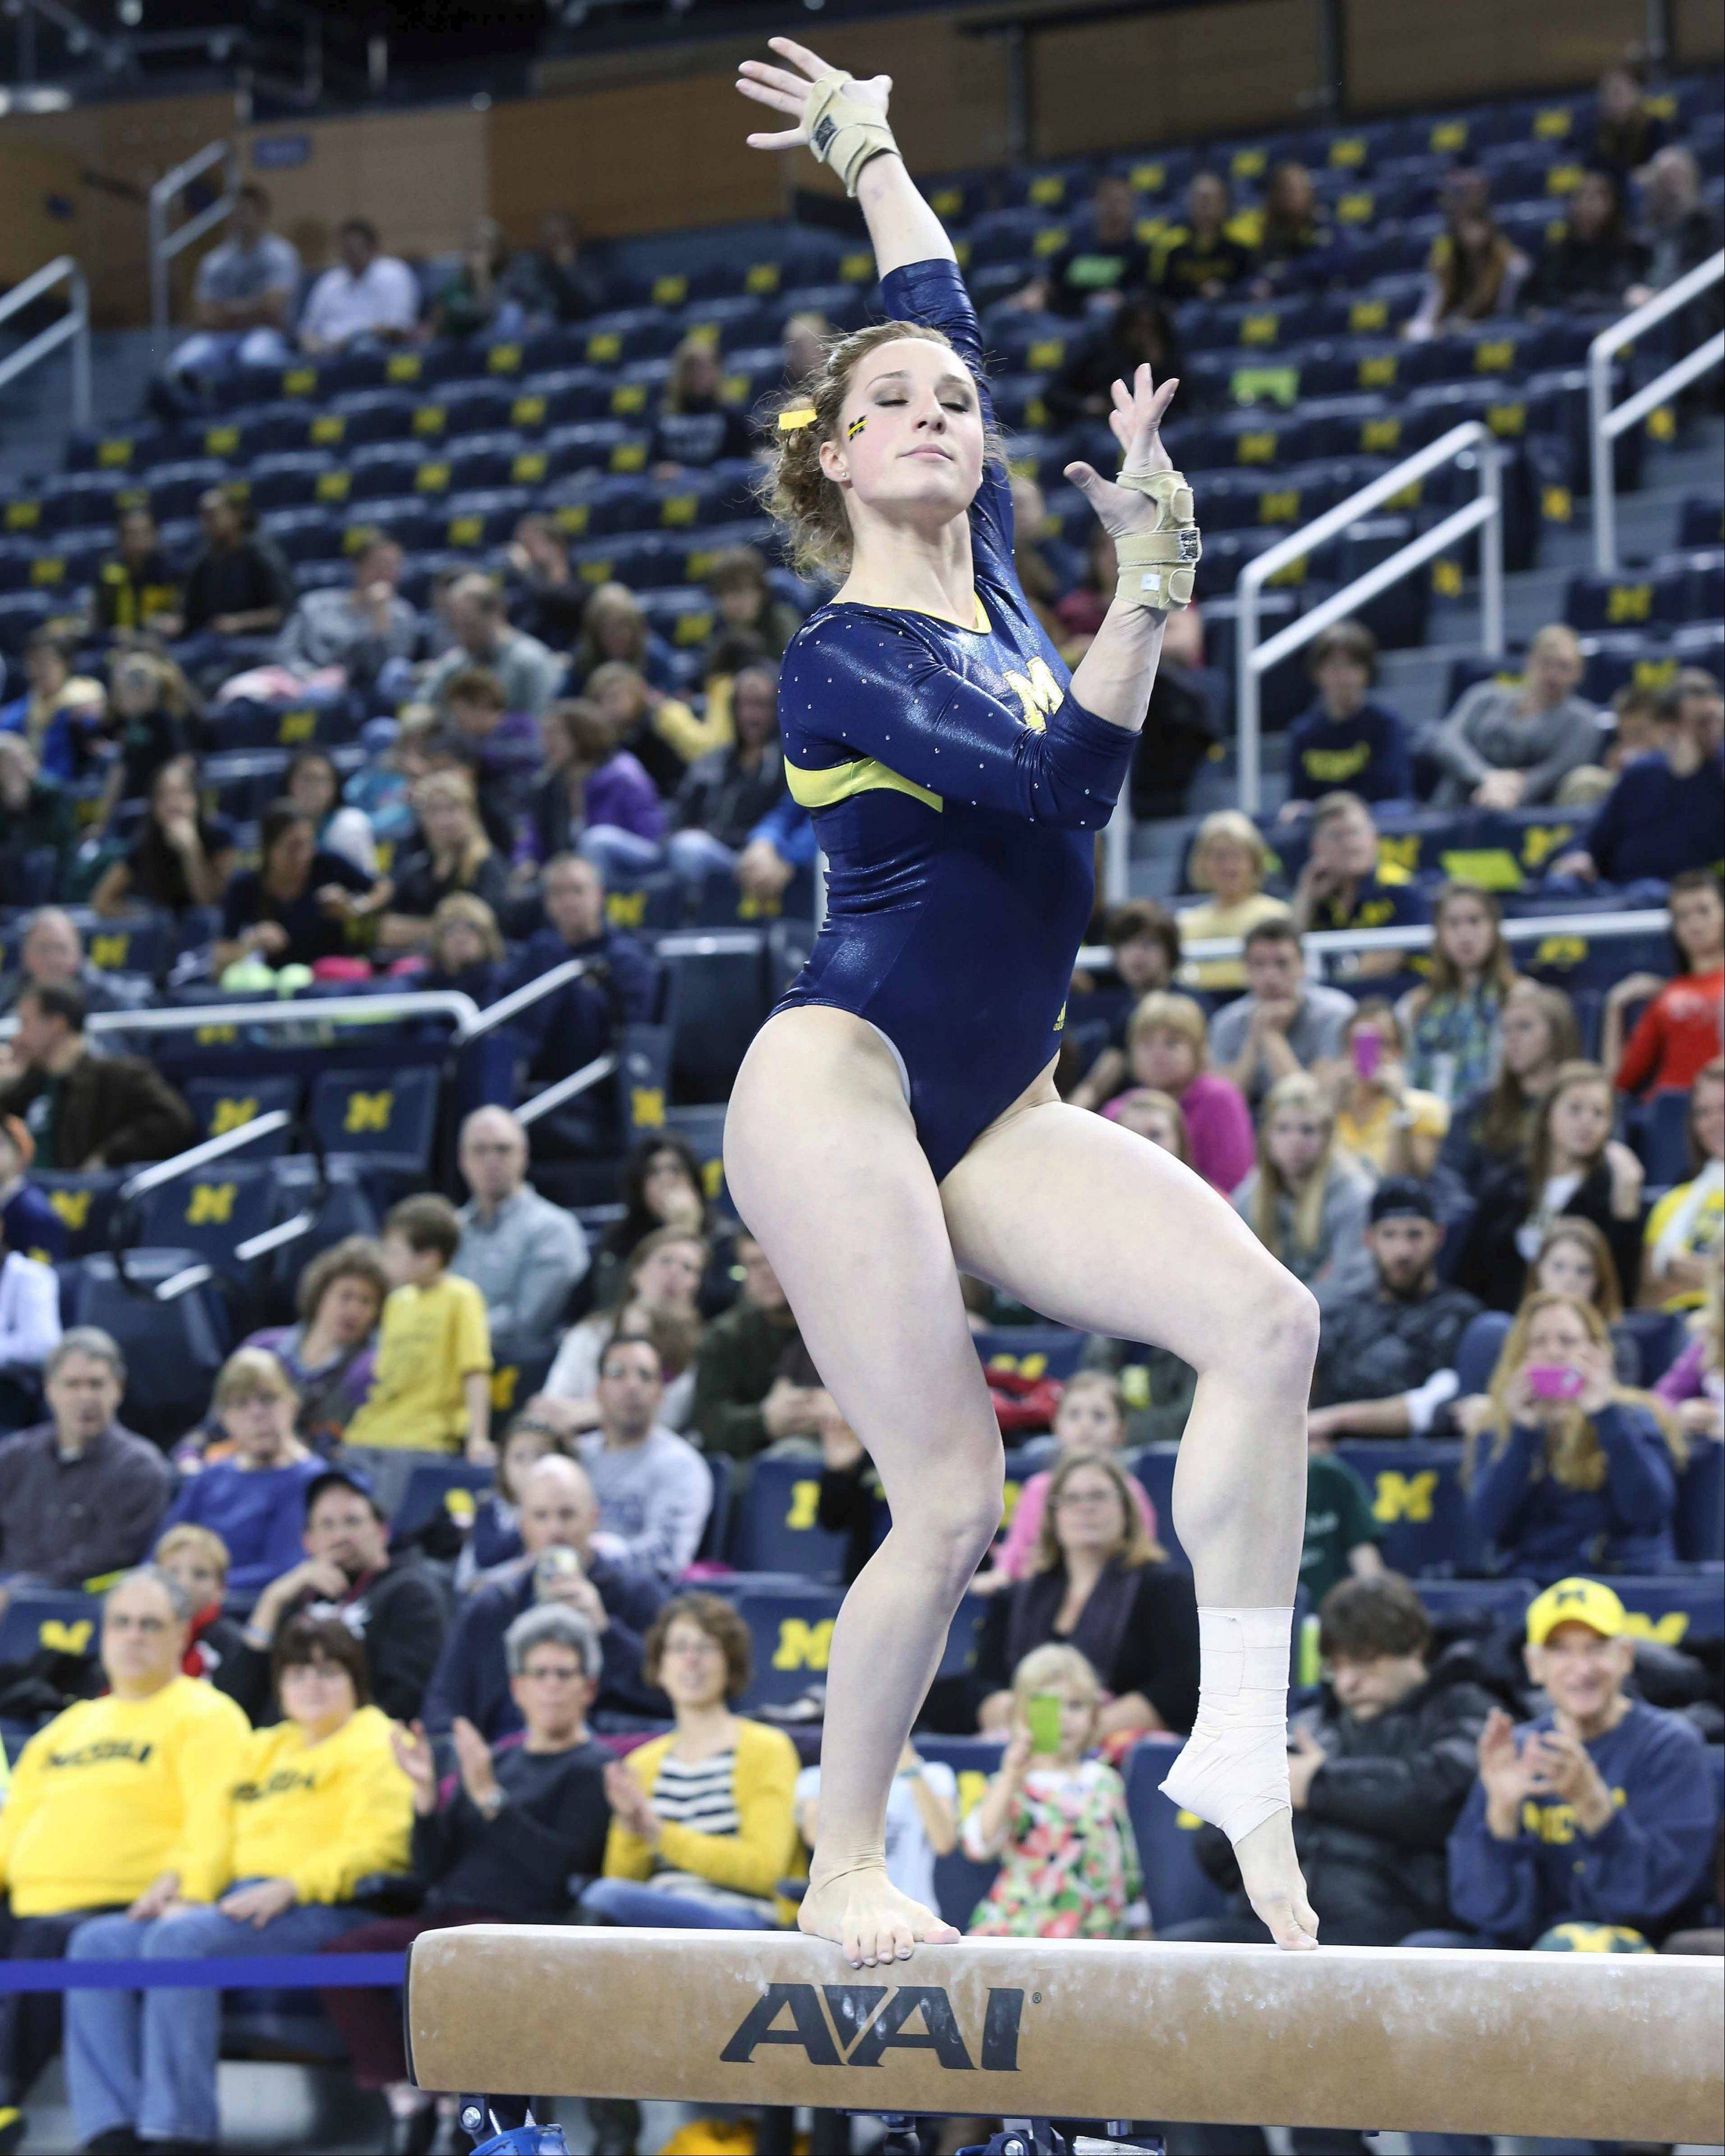 Michigan's three-time all-American gymnast, Katie Zurales of Wheaton Warrenville South, has helped the Wolverines become one of the top college teams in the country.